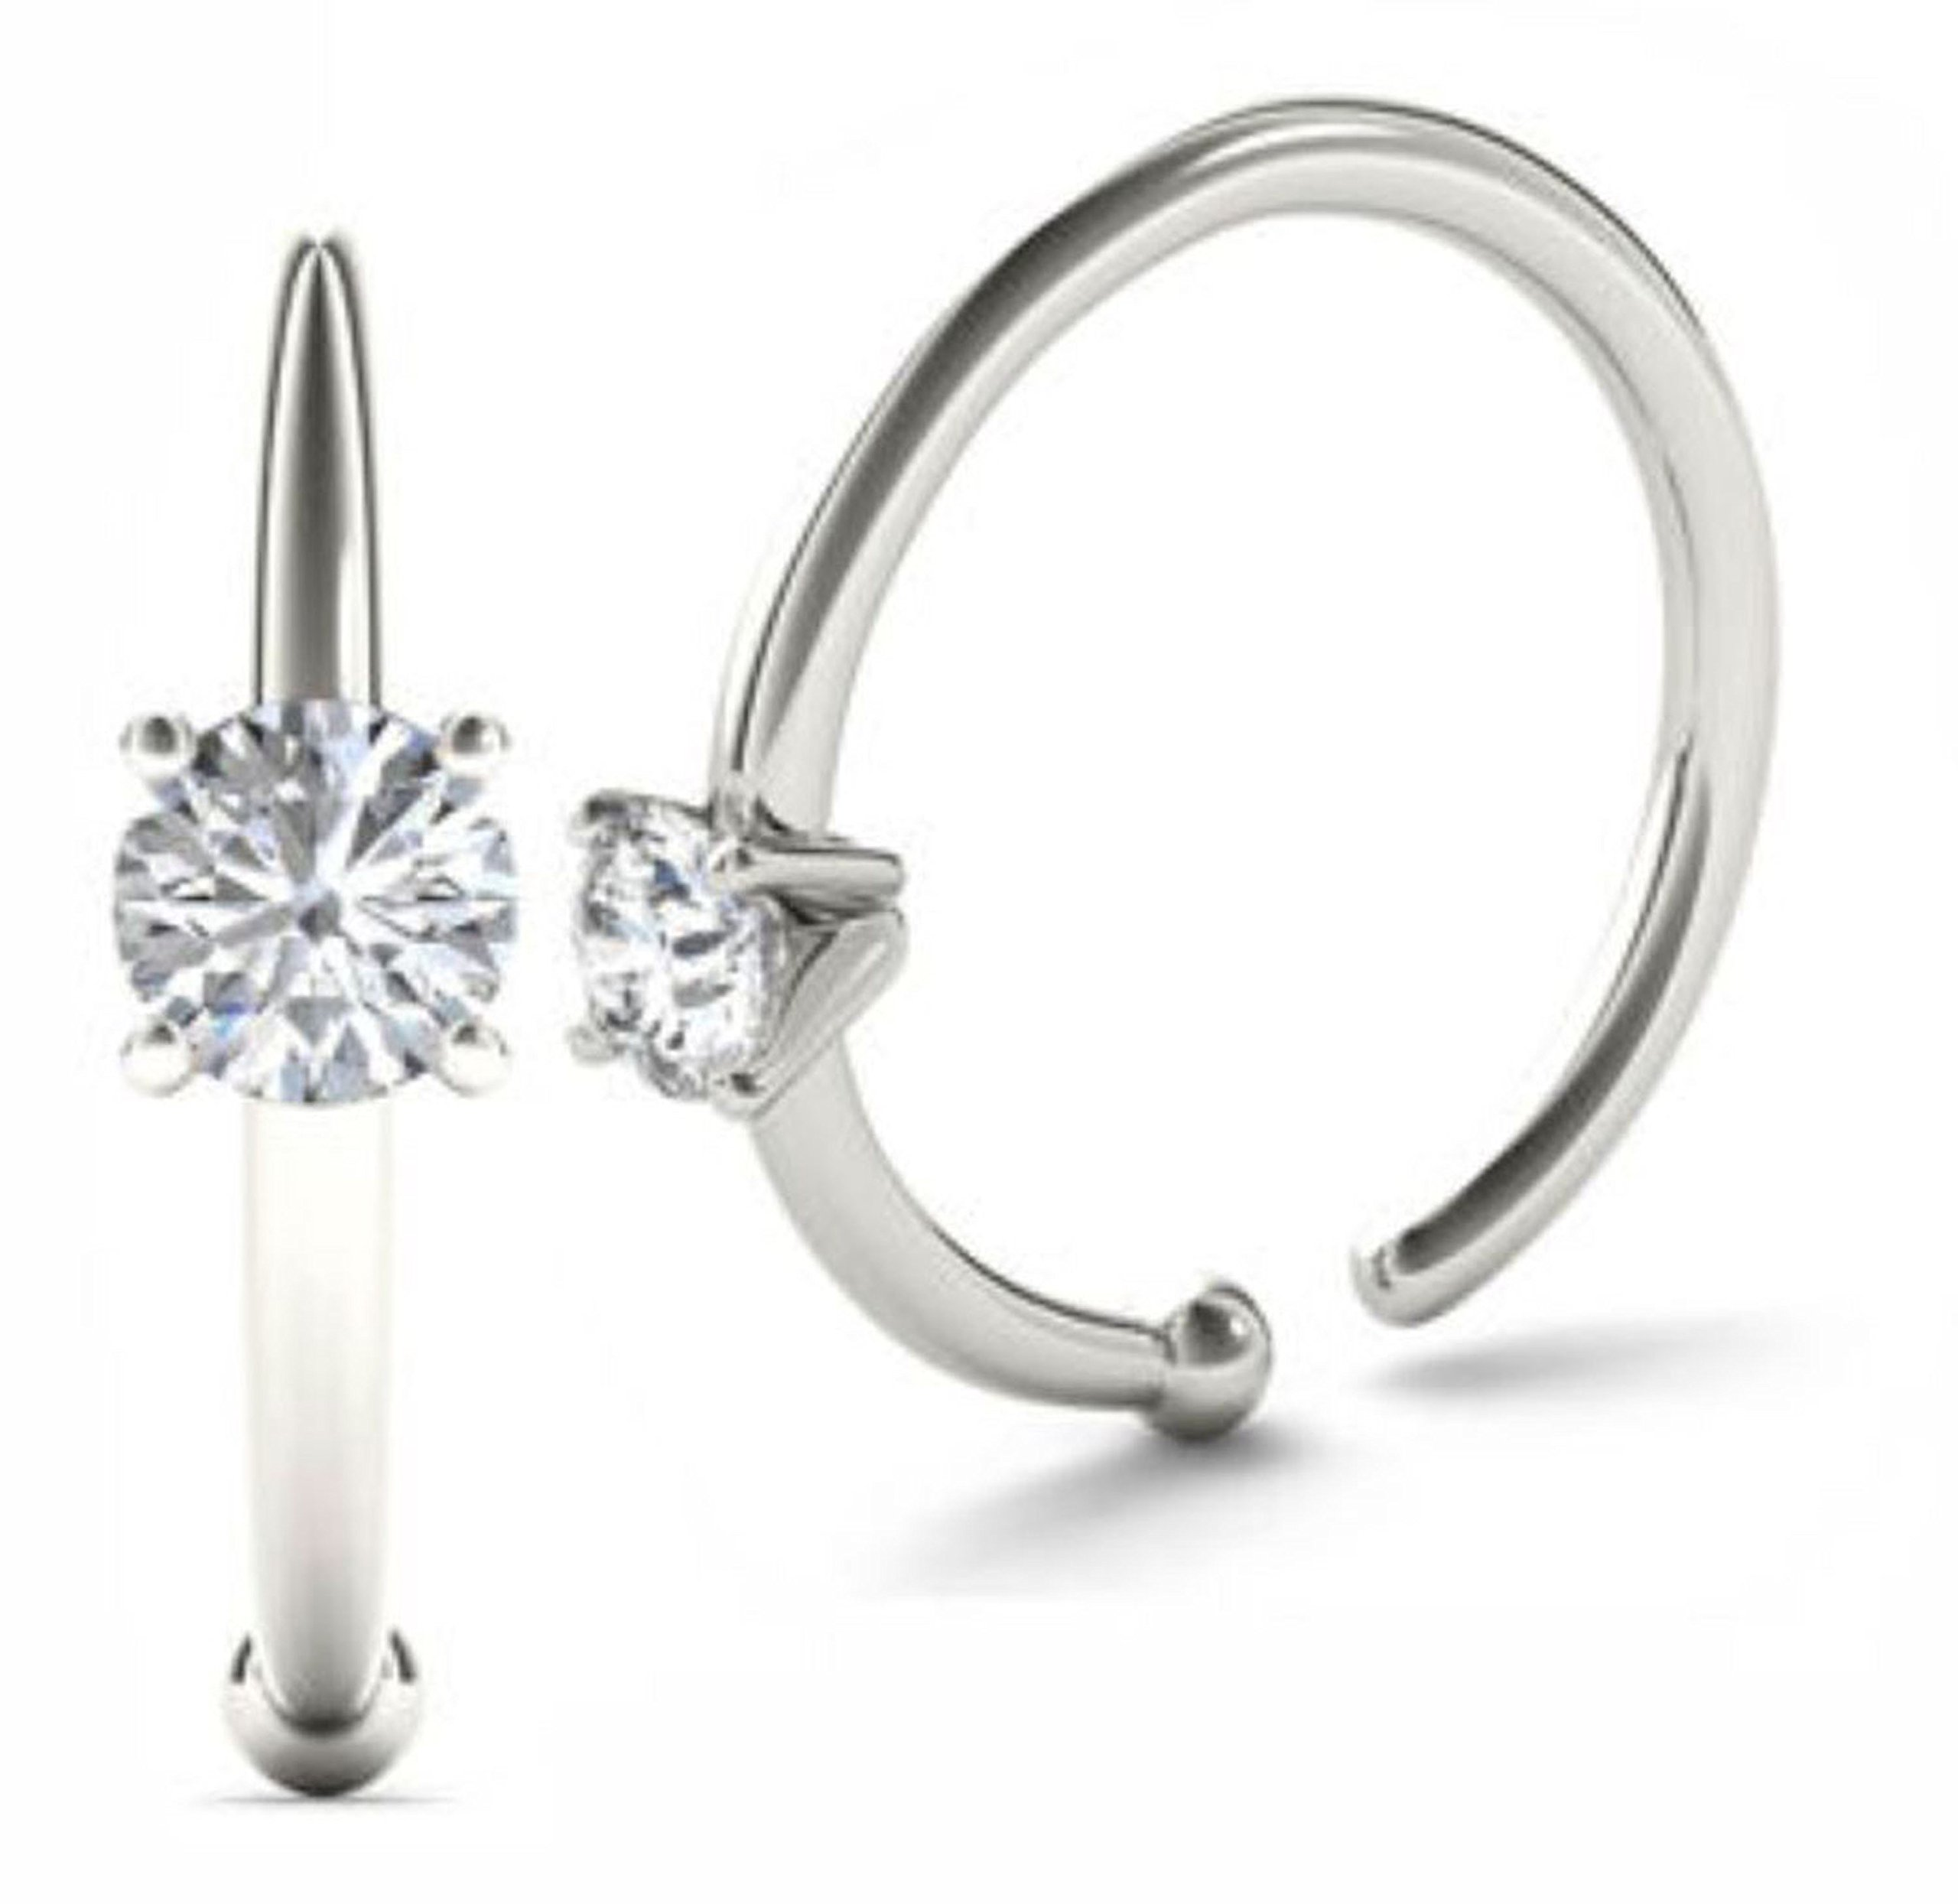 JewelMore 0.02ct Diamond Nose Ring Hoop - 14K White Gold or Yellow Gold (White Gold)